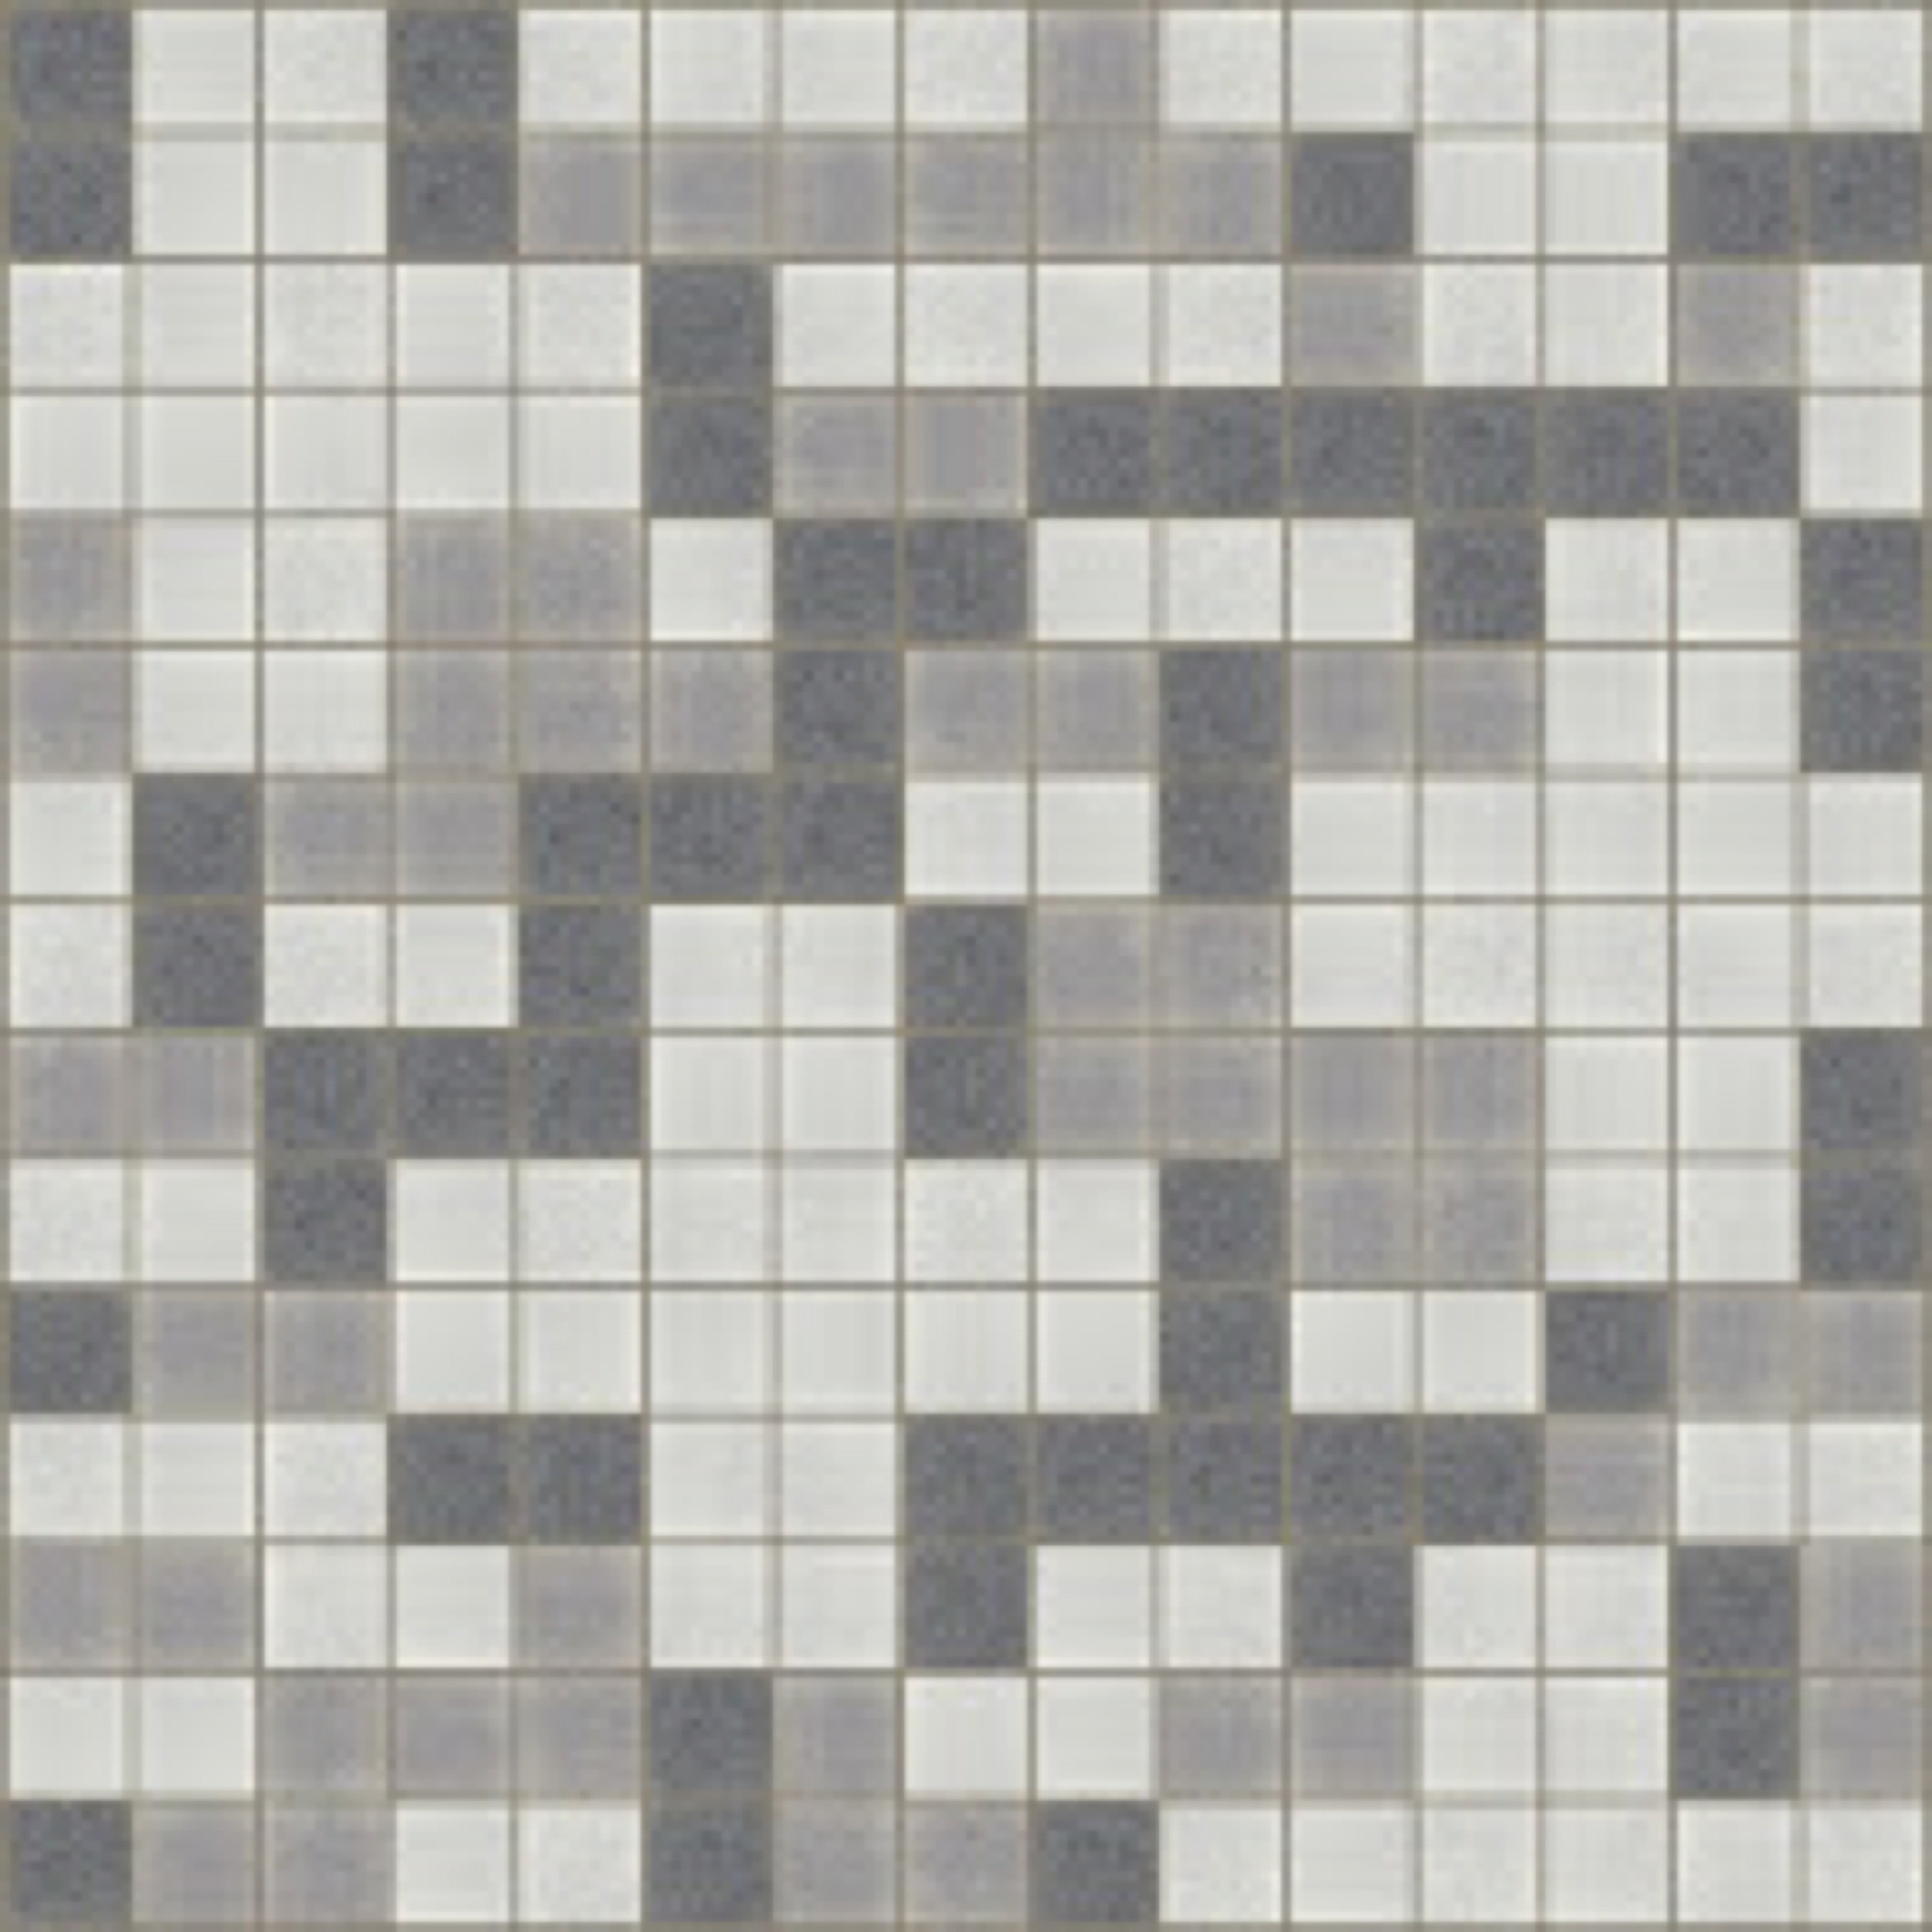 Free photo: Tile patterns - Terracotta, Stone, Tile - Free Download ...